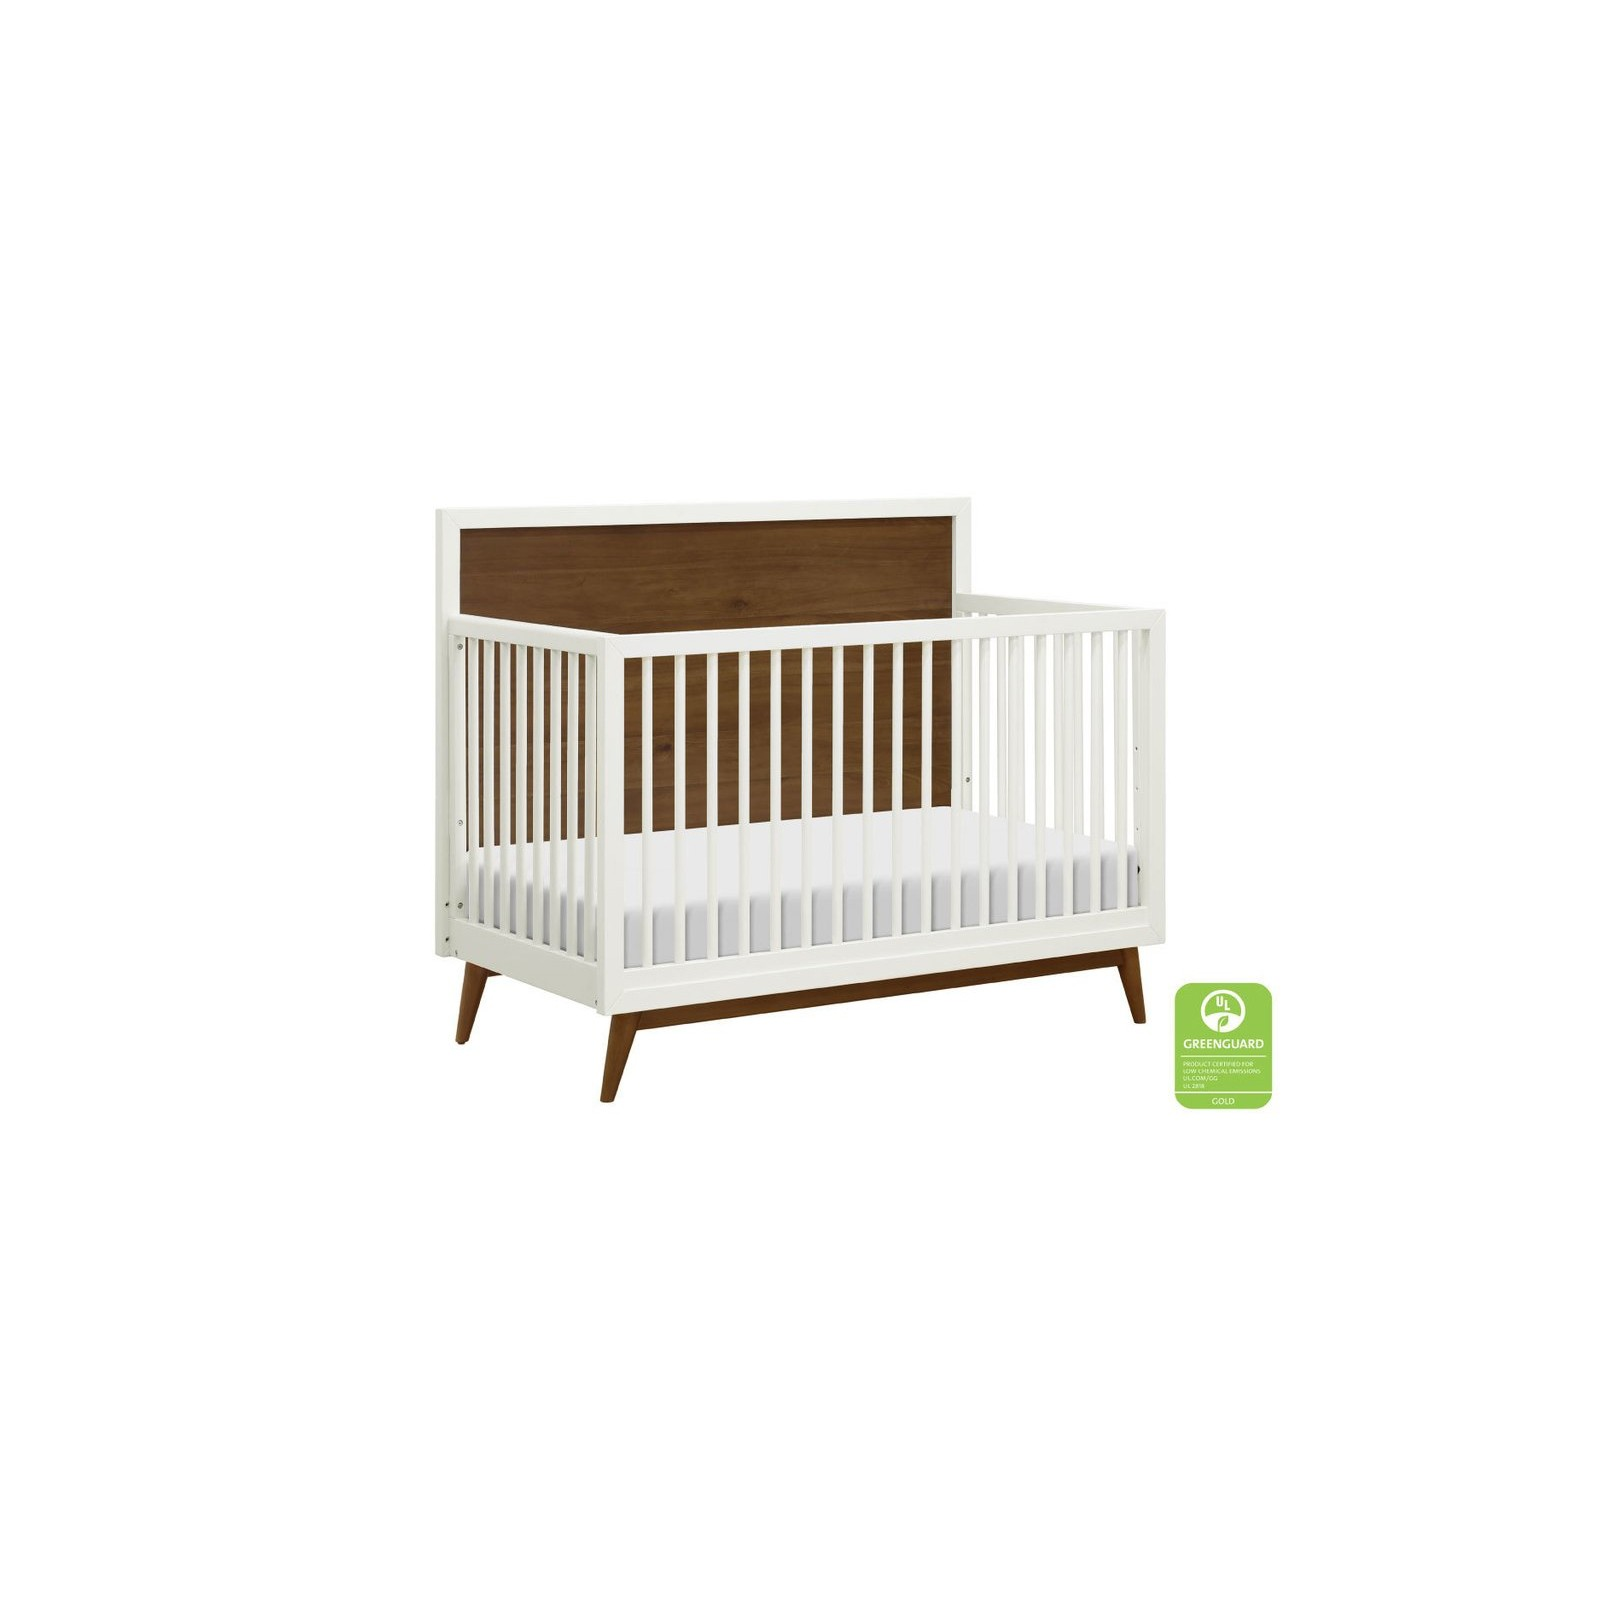 Assembled Babyletto Palma 7-Drawer Double Dresser Warm White with Natural Walnut